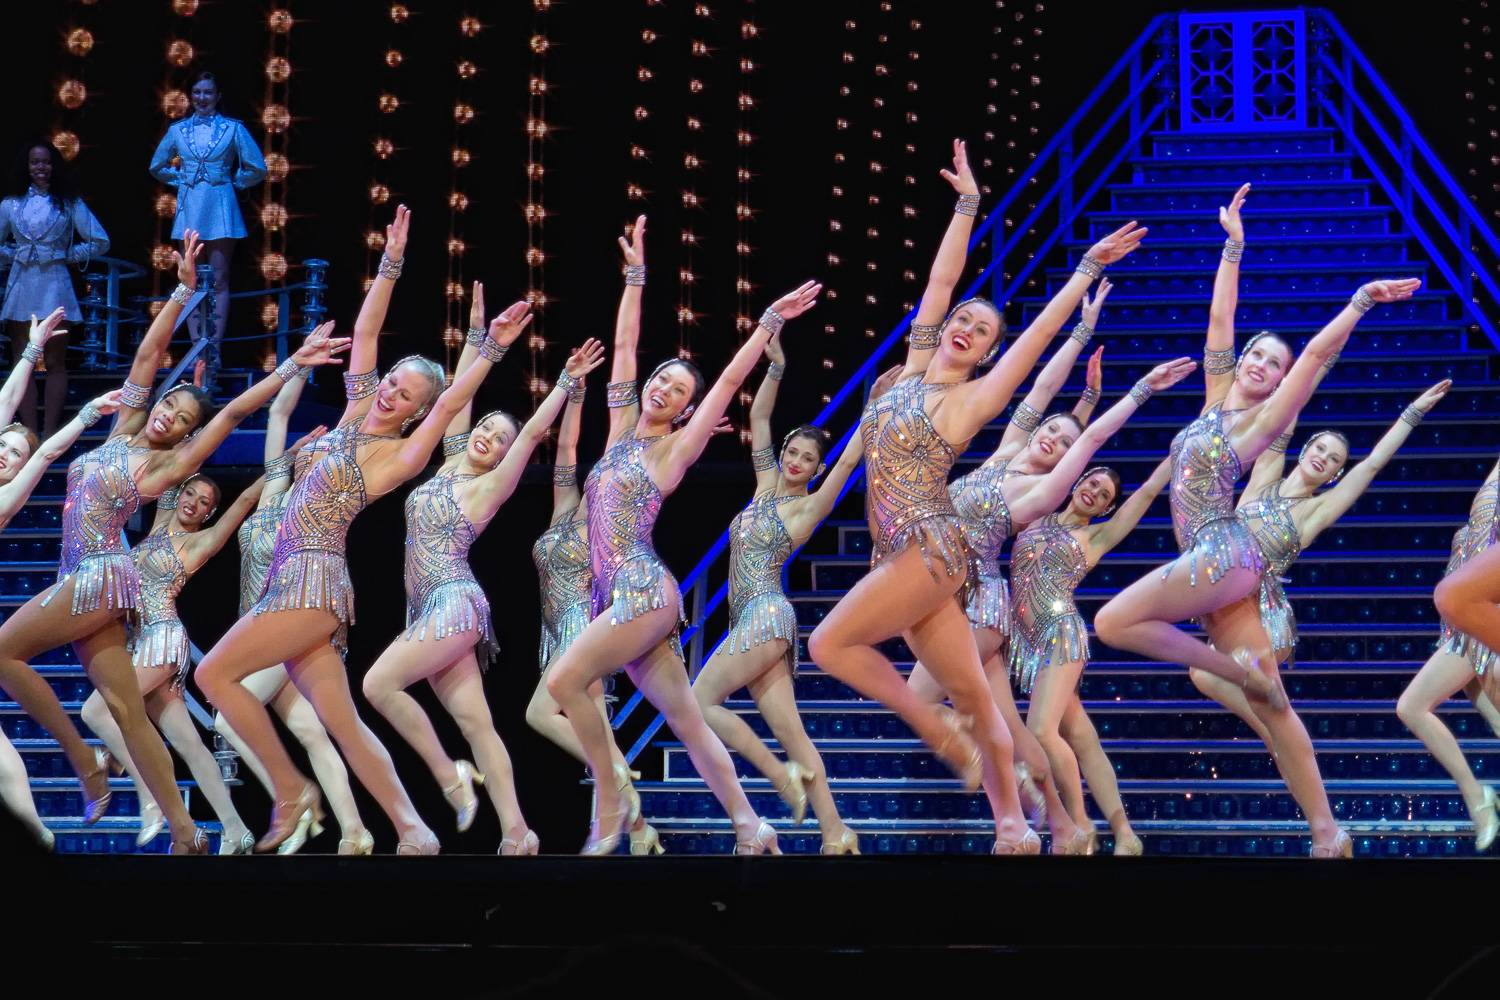 Image of the Radio City Rockettes performing in the Radio City Christmas Spectacular